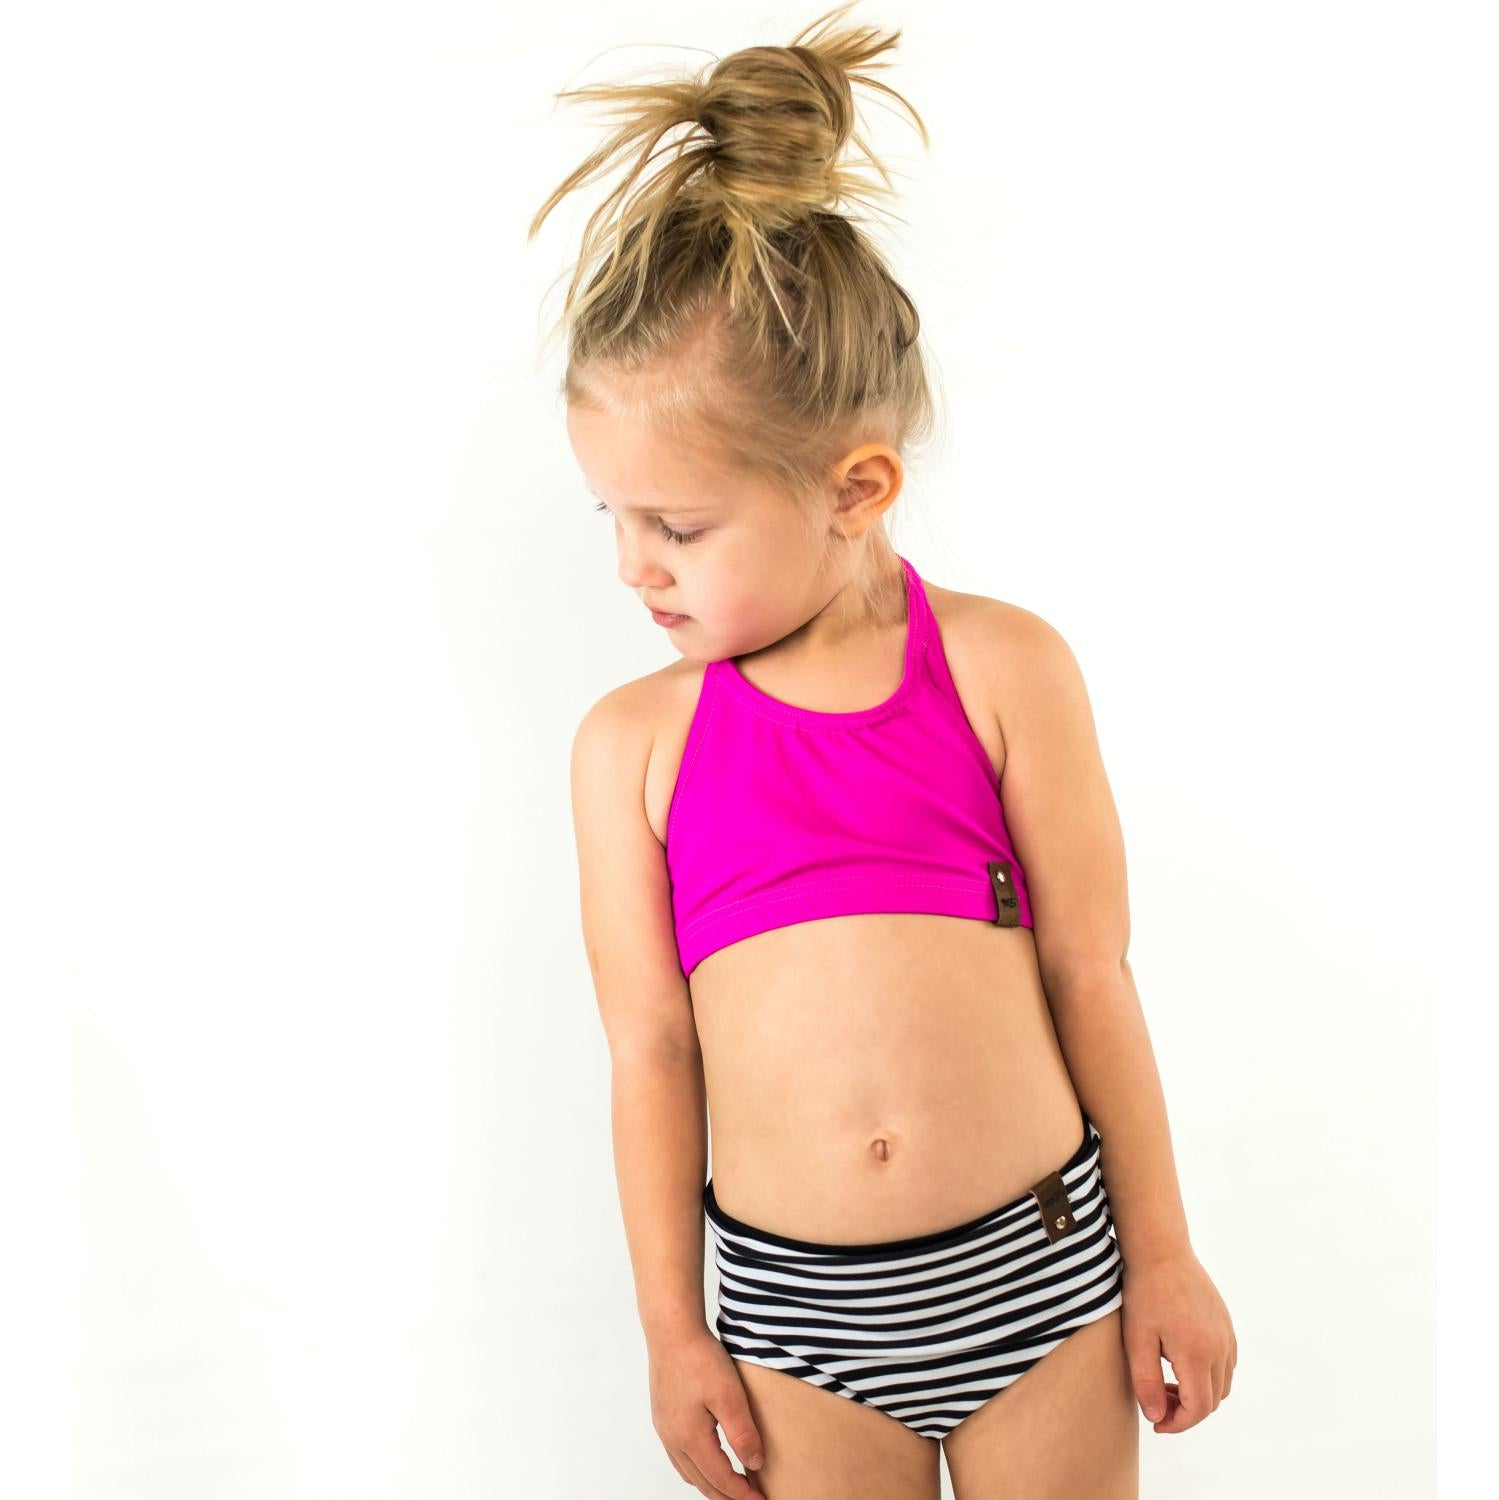 Reversible swim bikini bottoms in monochrome stripes and solid black for girls by Mini Street